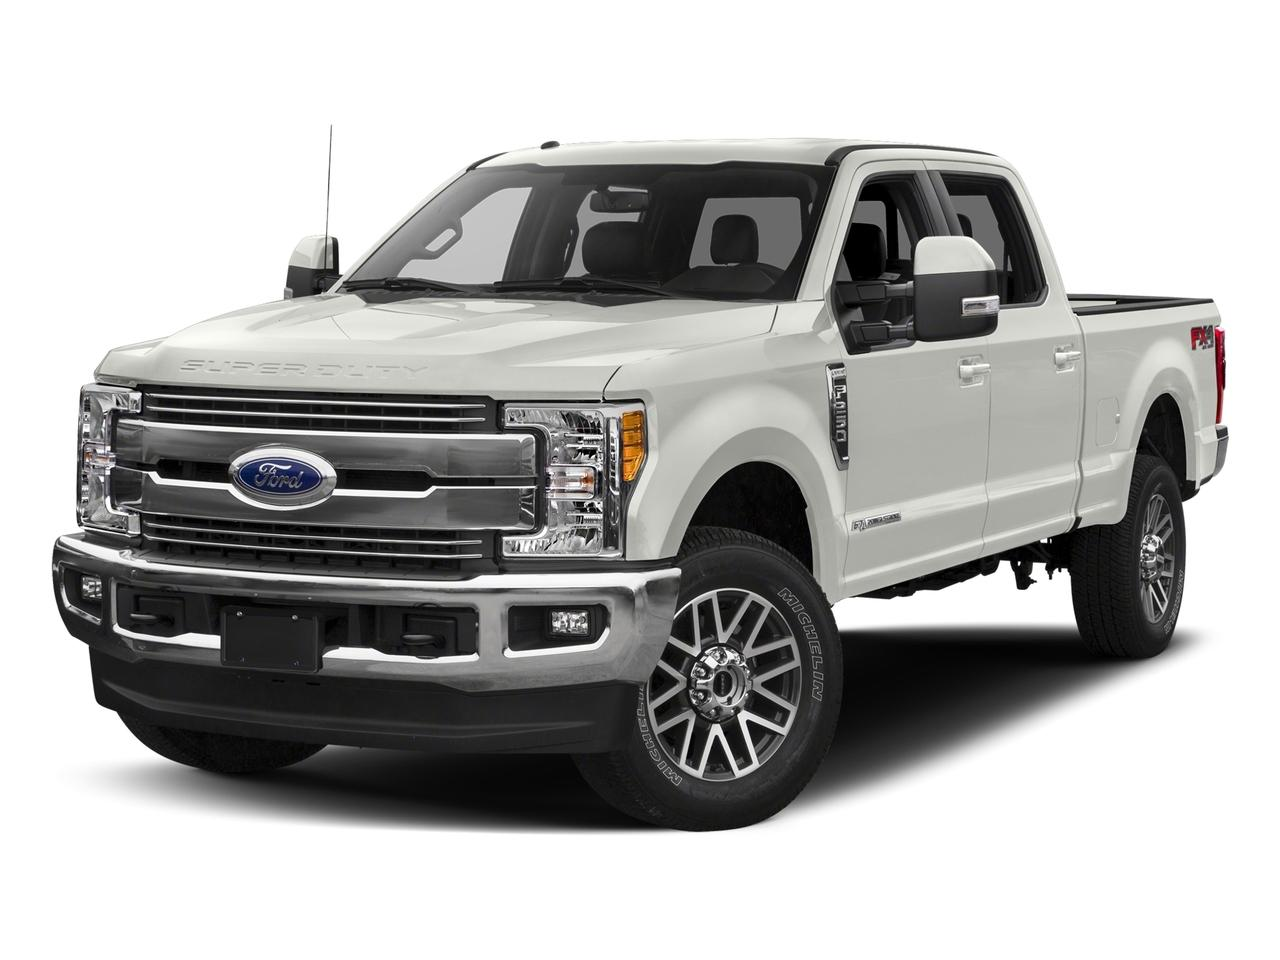 2017 Ford Super Duty F-250 SRW Vehicle Photo in Souderton, PA 18964-1038